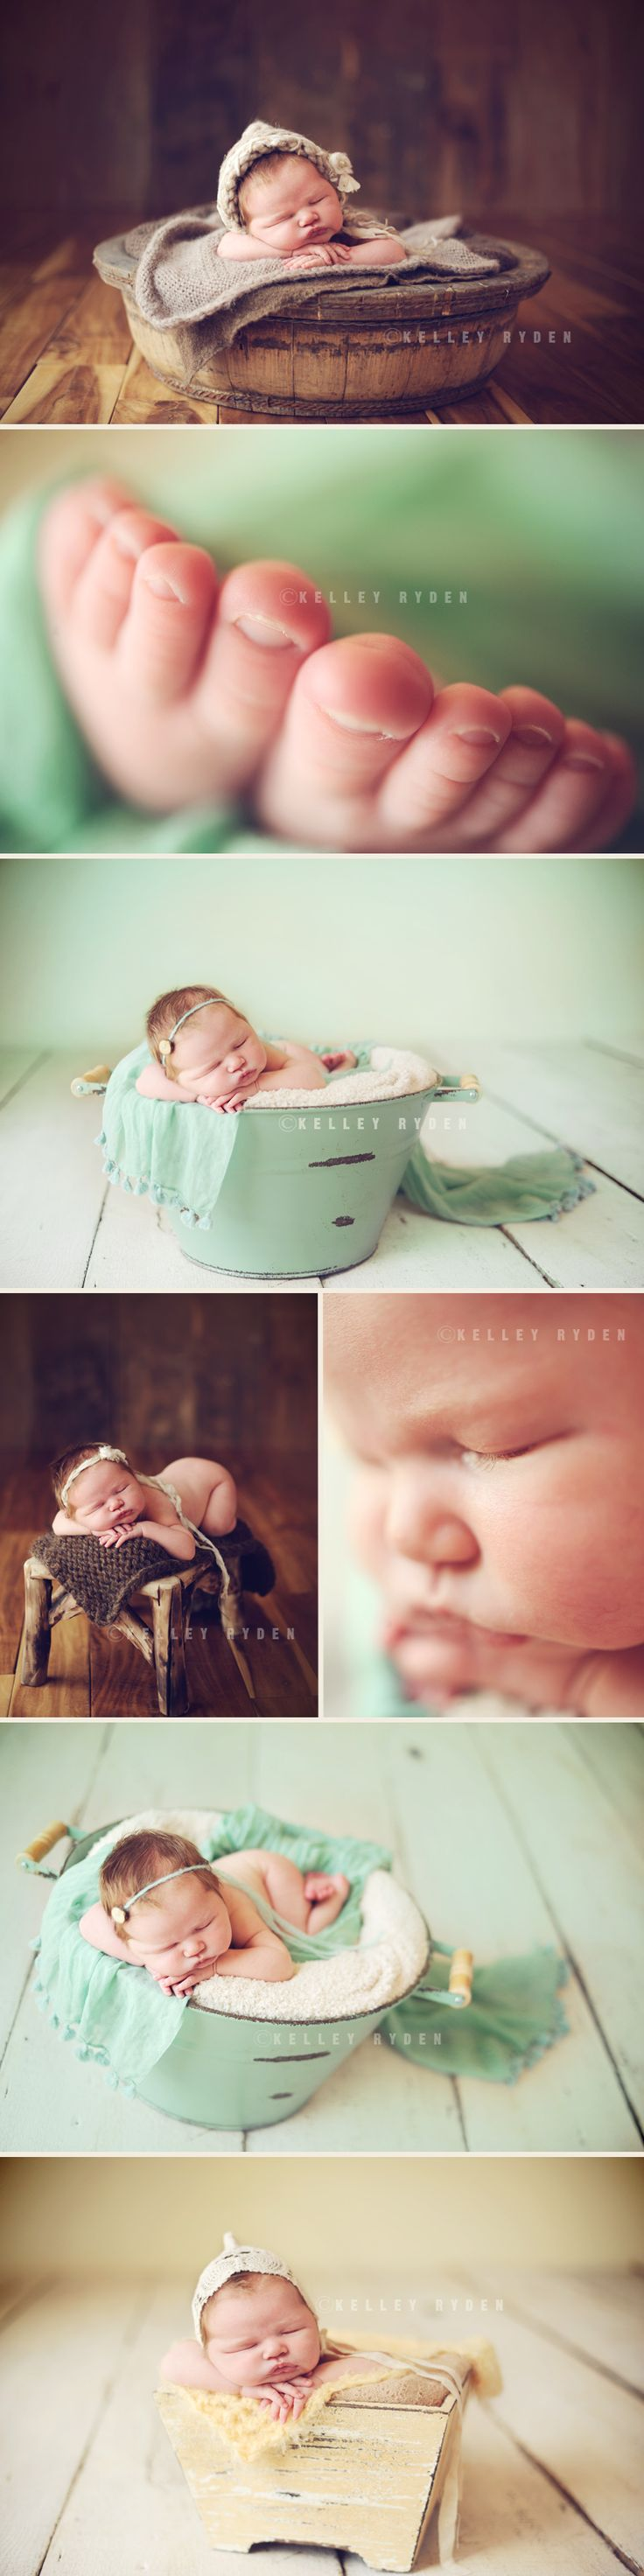 Newborns: Photography Newborn, Photo Ideas, Newborns Photo, Newborn Baby Photo, Newborn Prop, Newborn Photo Idea, Newborn Photography Prop